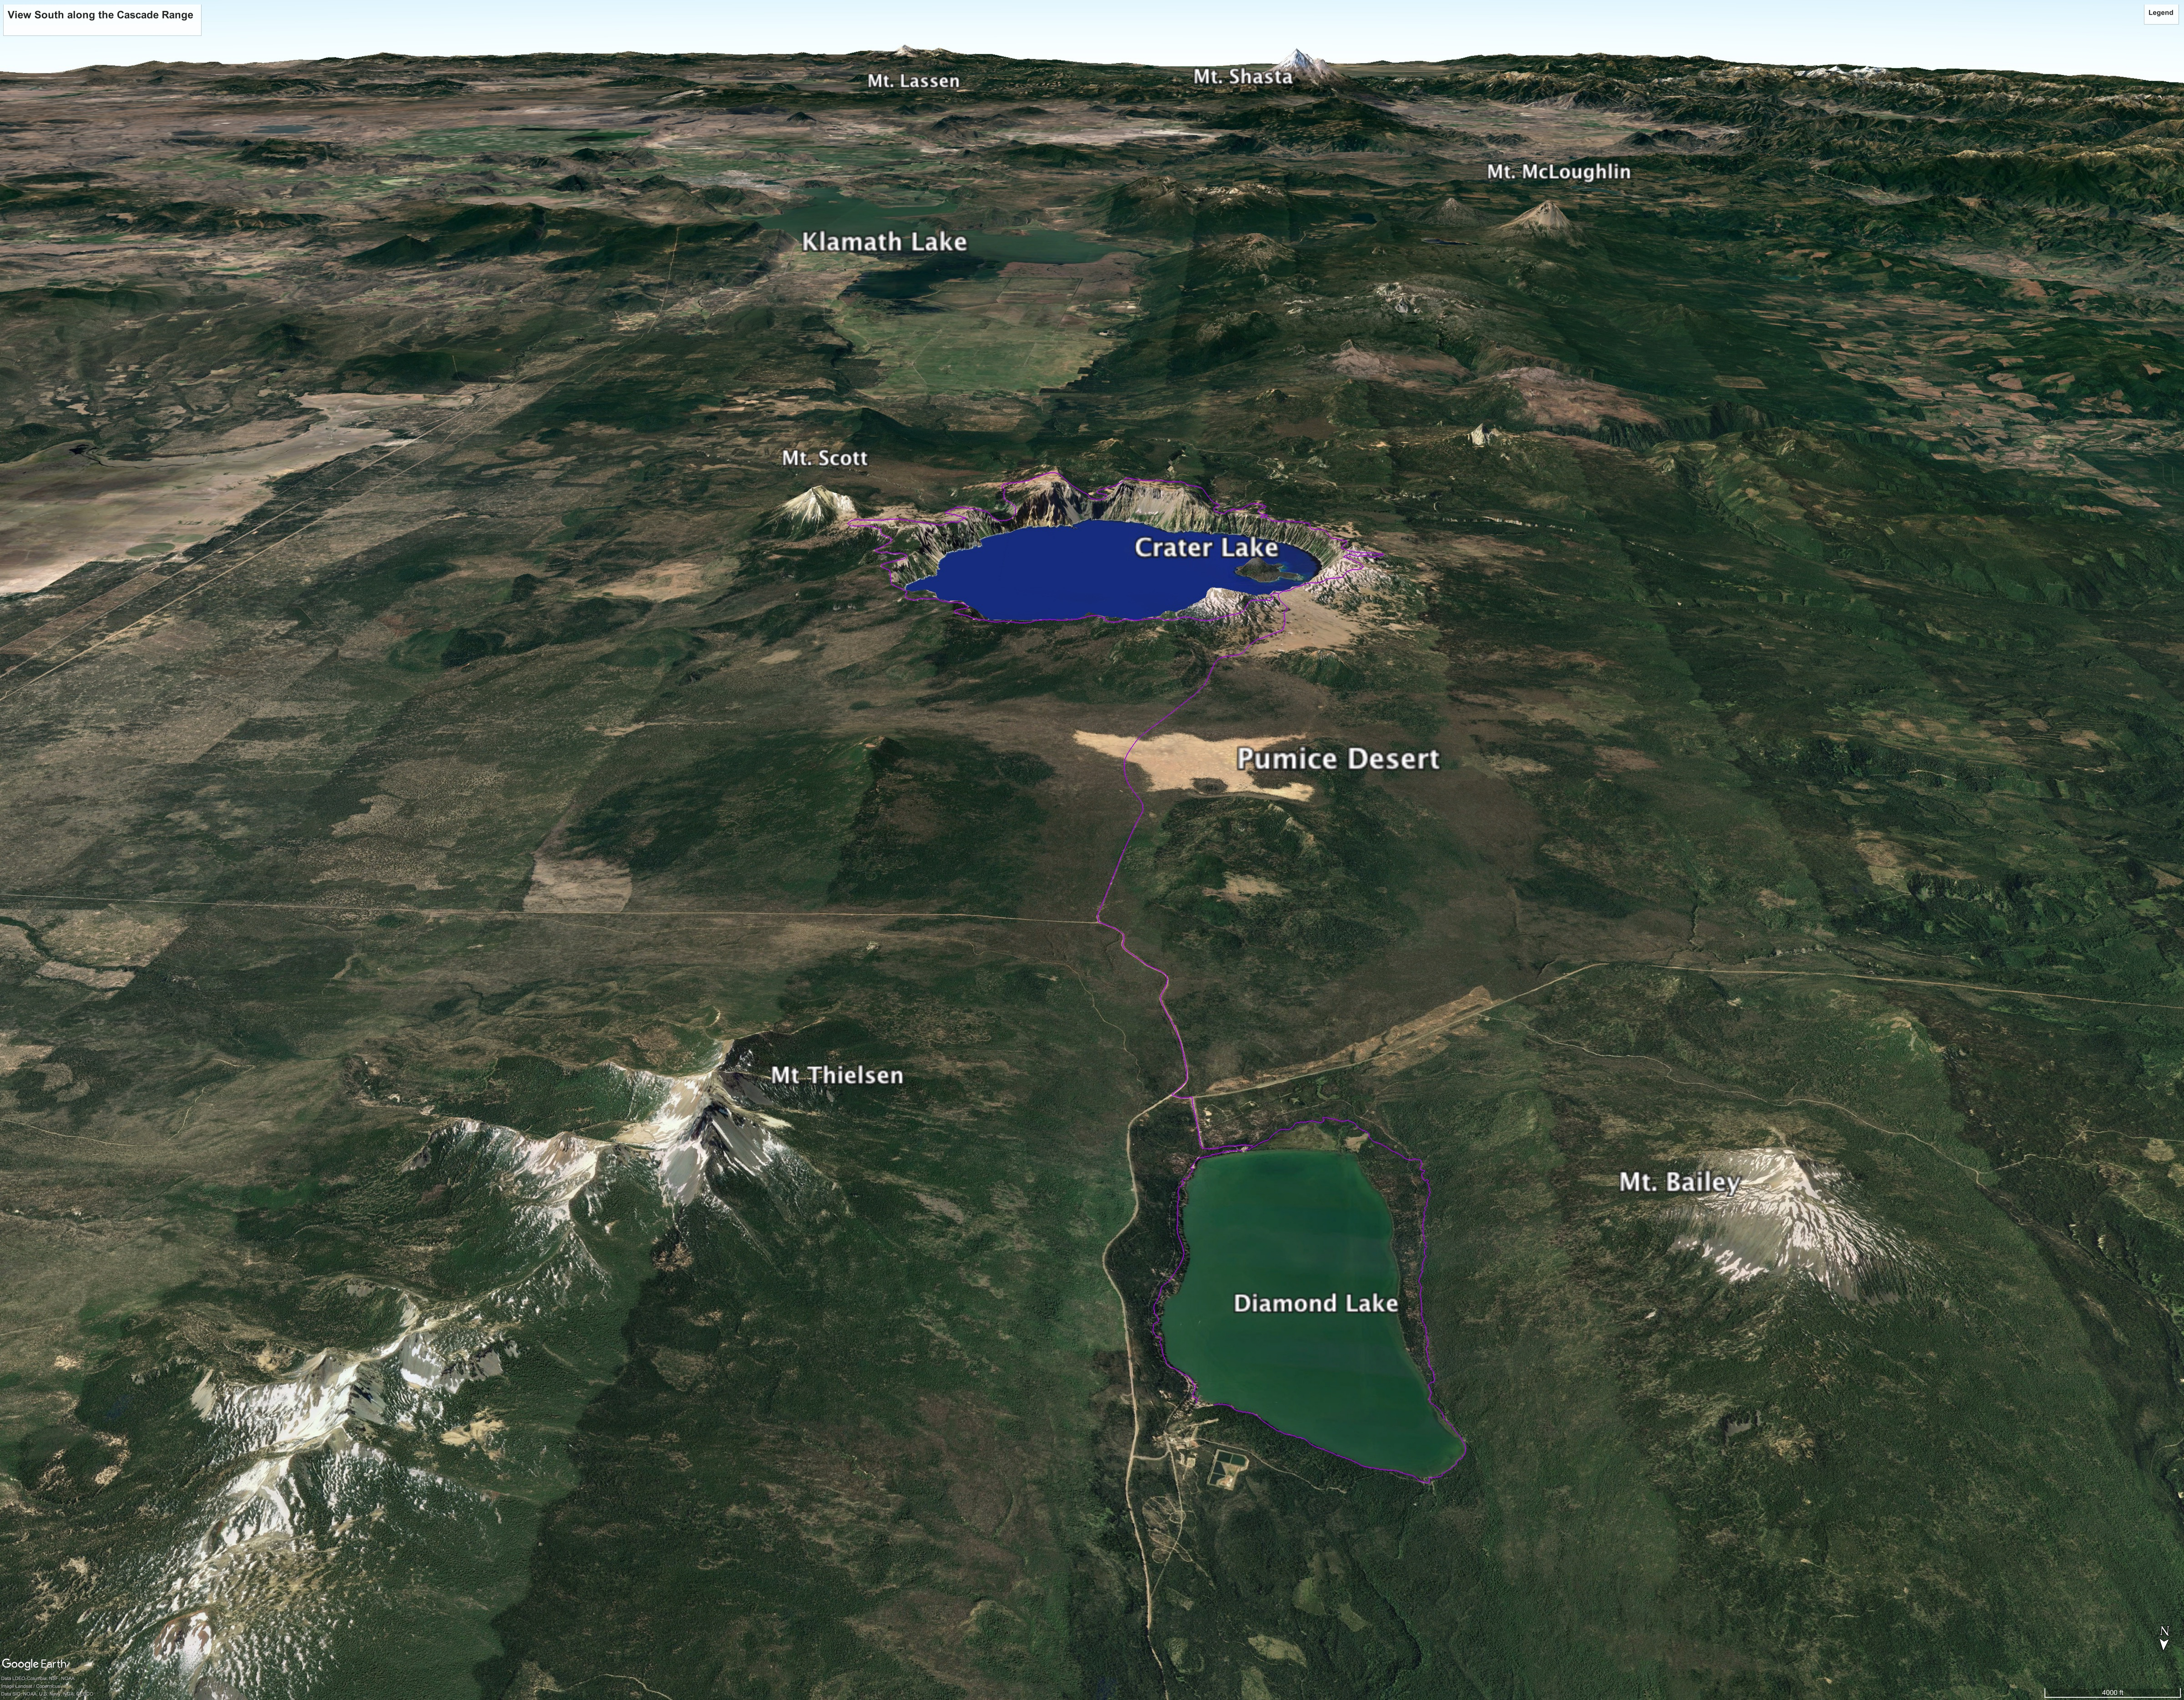 Figure 1: The view south shows our route around Crater Lake, which occupies  the stump of Mt. Mazama. The Cascade volcano chain extends south from Crater  ...